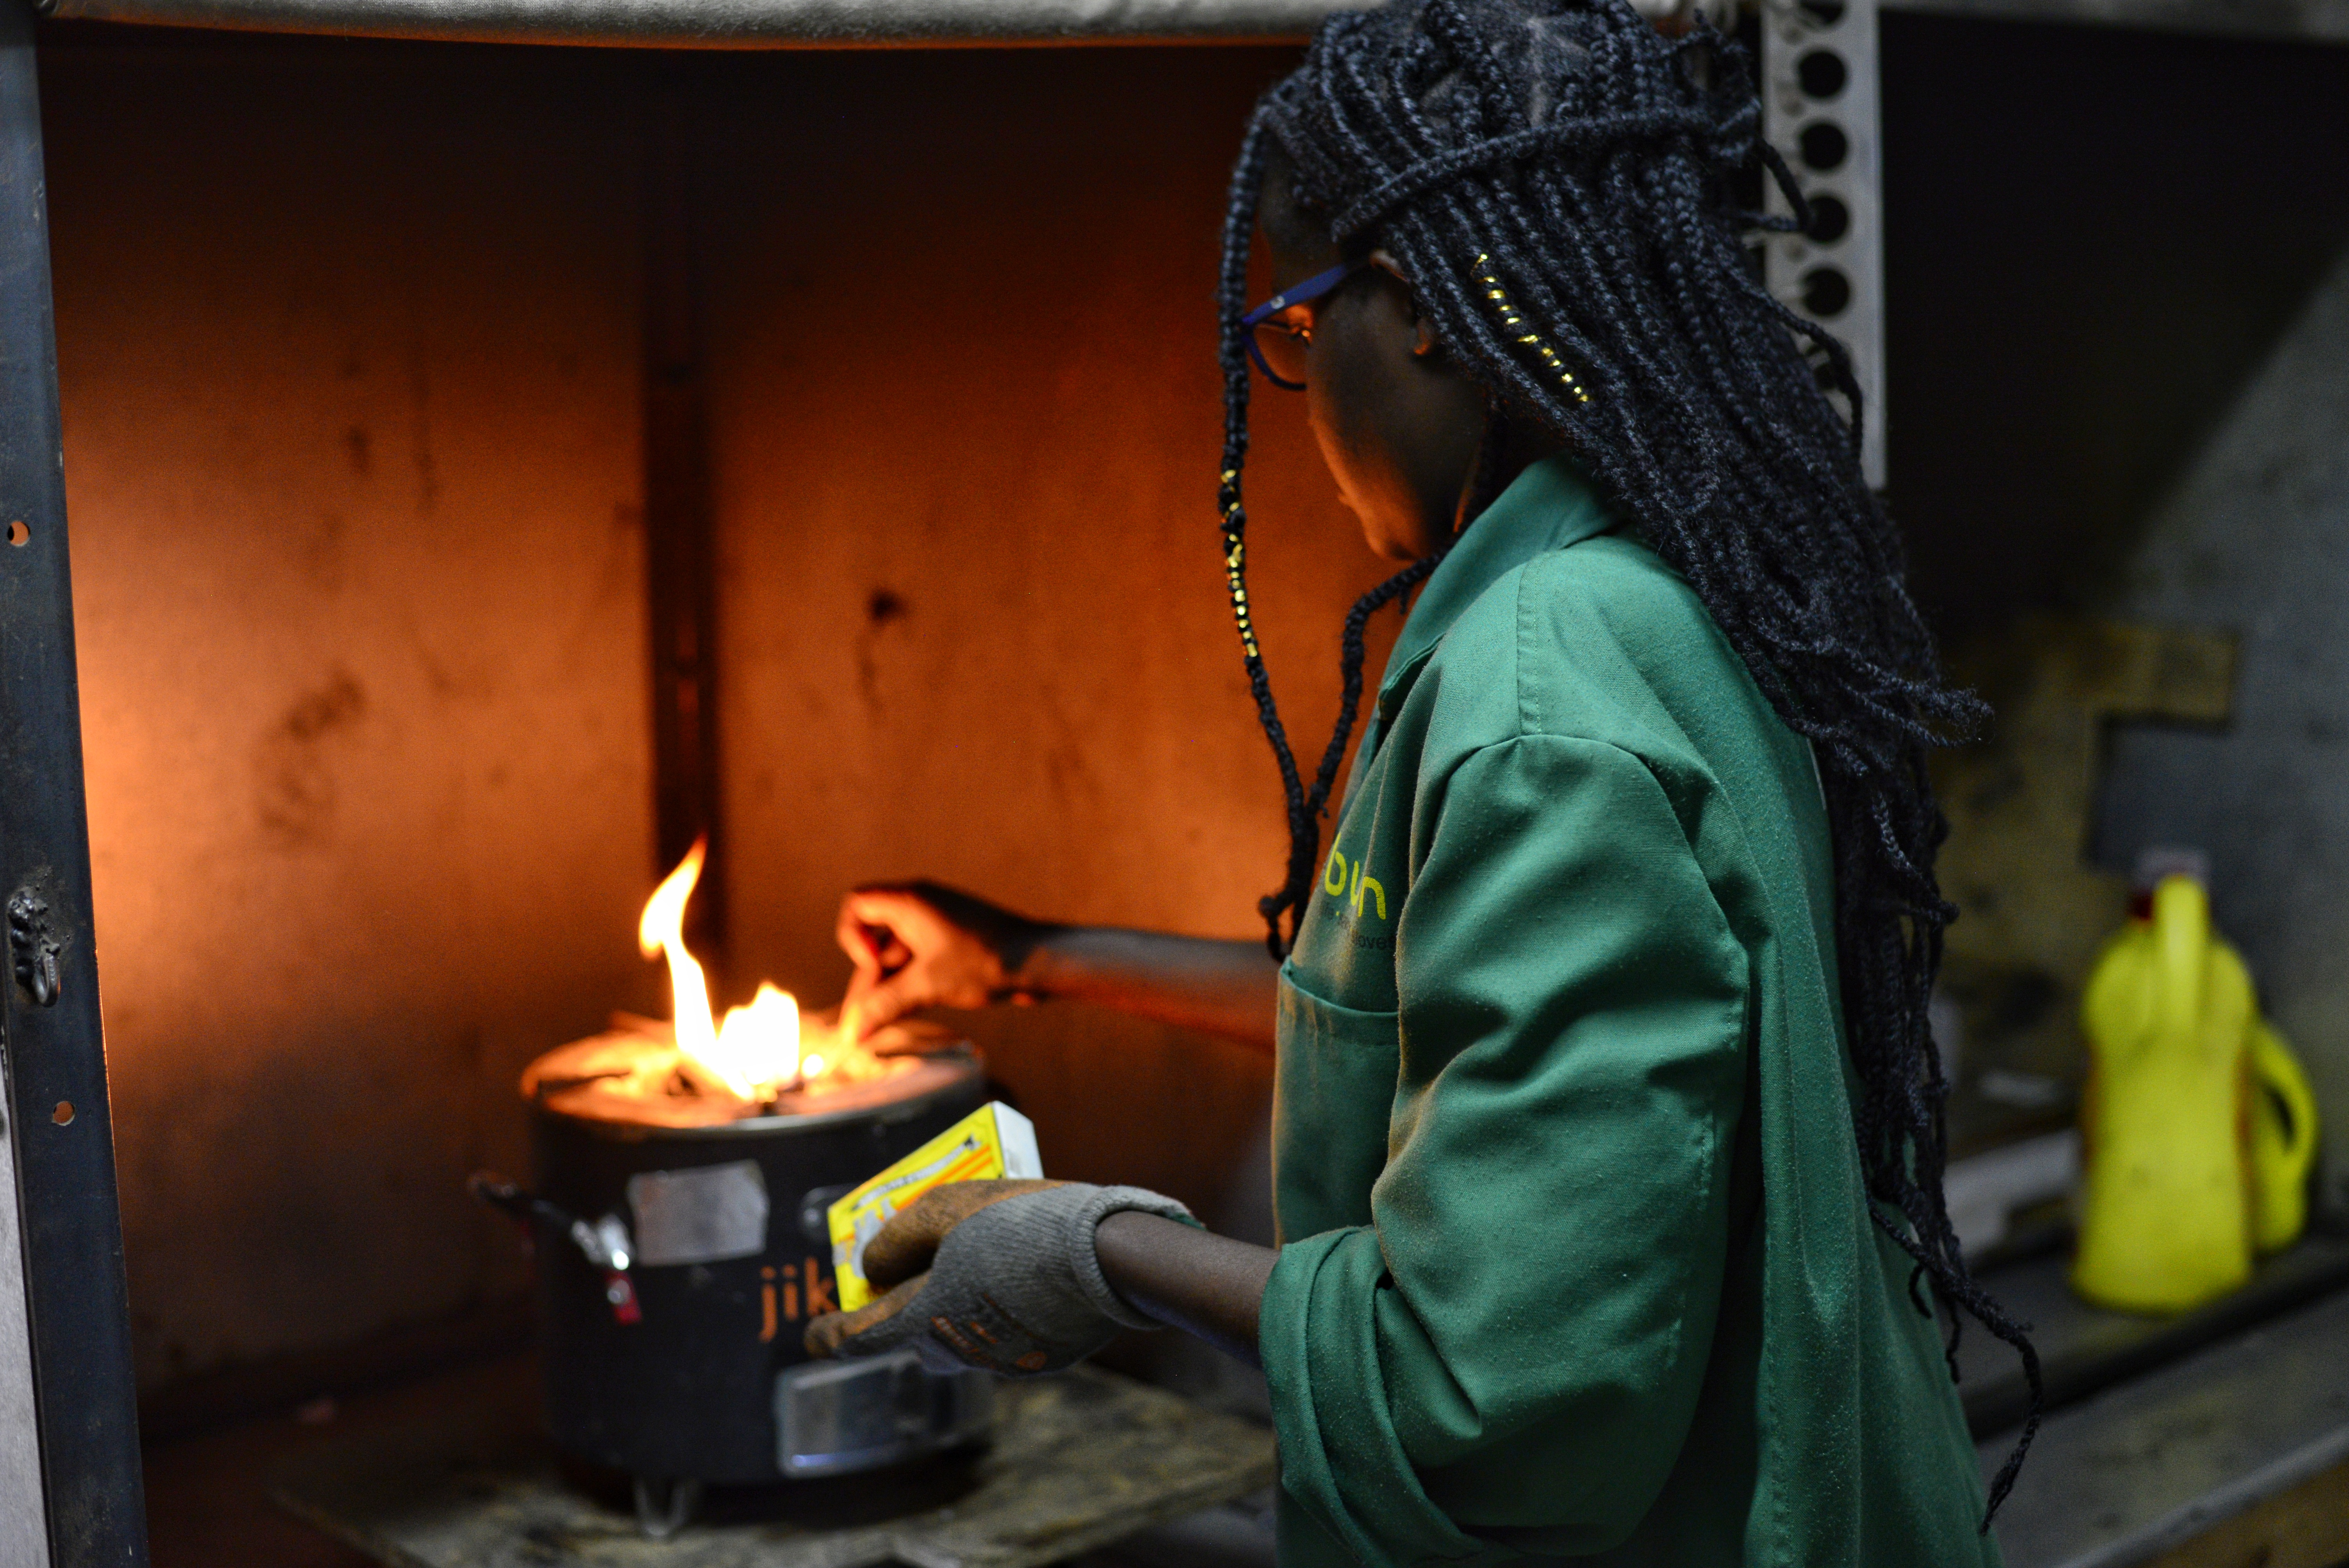 Ketty setting up a test to show me how she measures stove efficiency in the laboratory